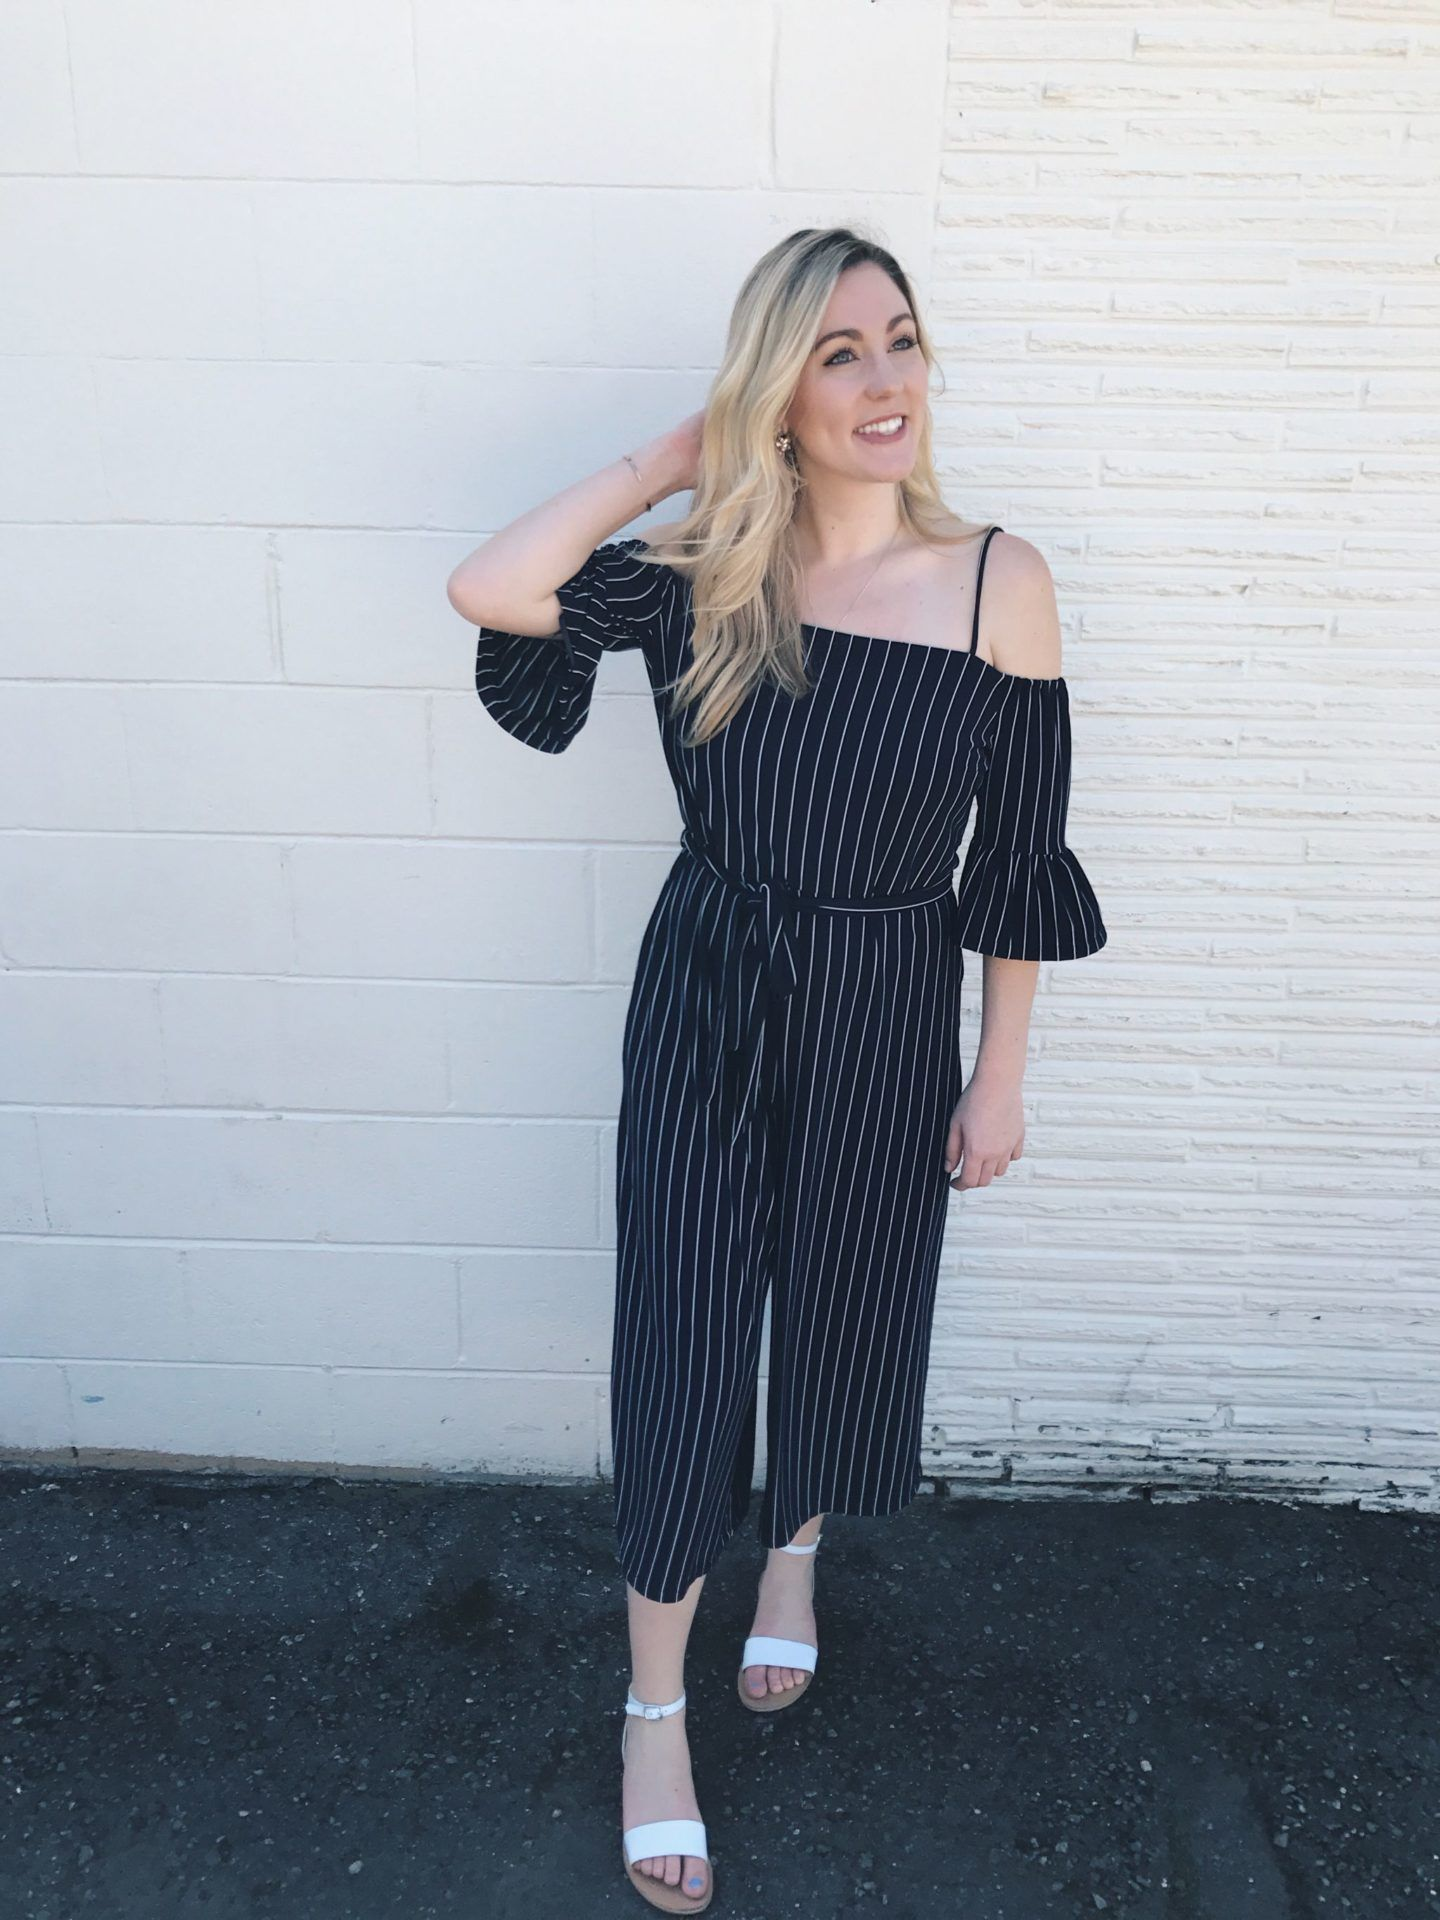 86759937bc3 Stylish woman walks in off the shoulder striped navy blue jumpsuit from  Banana Republic against white wall